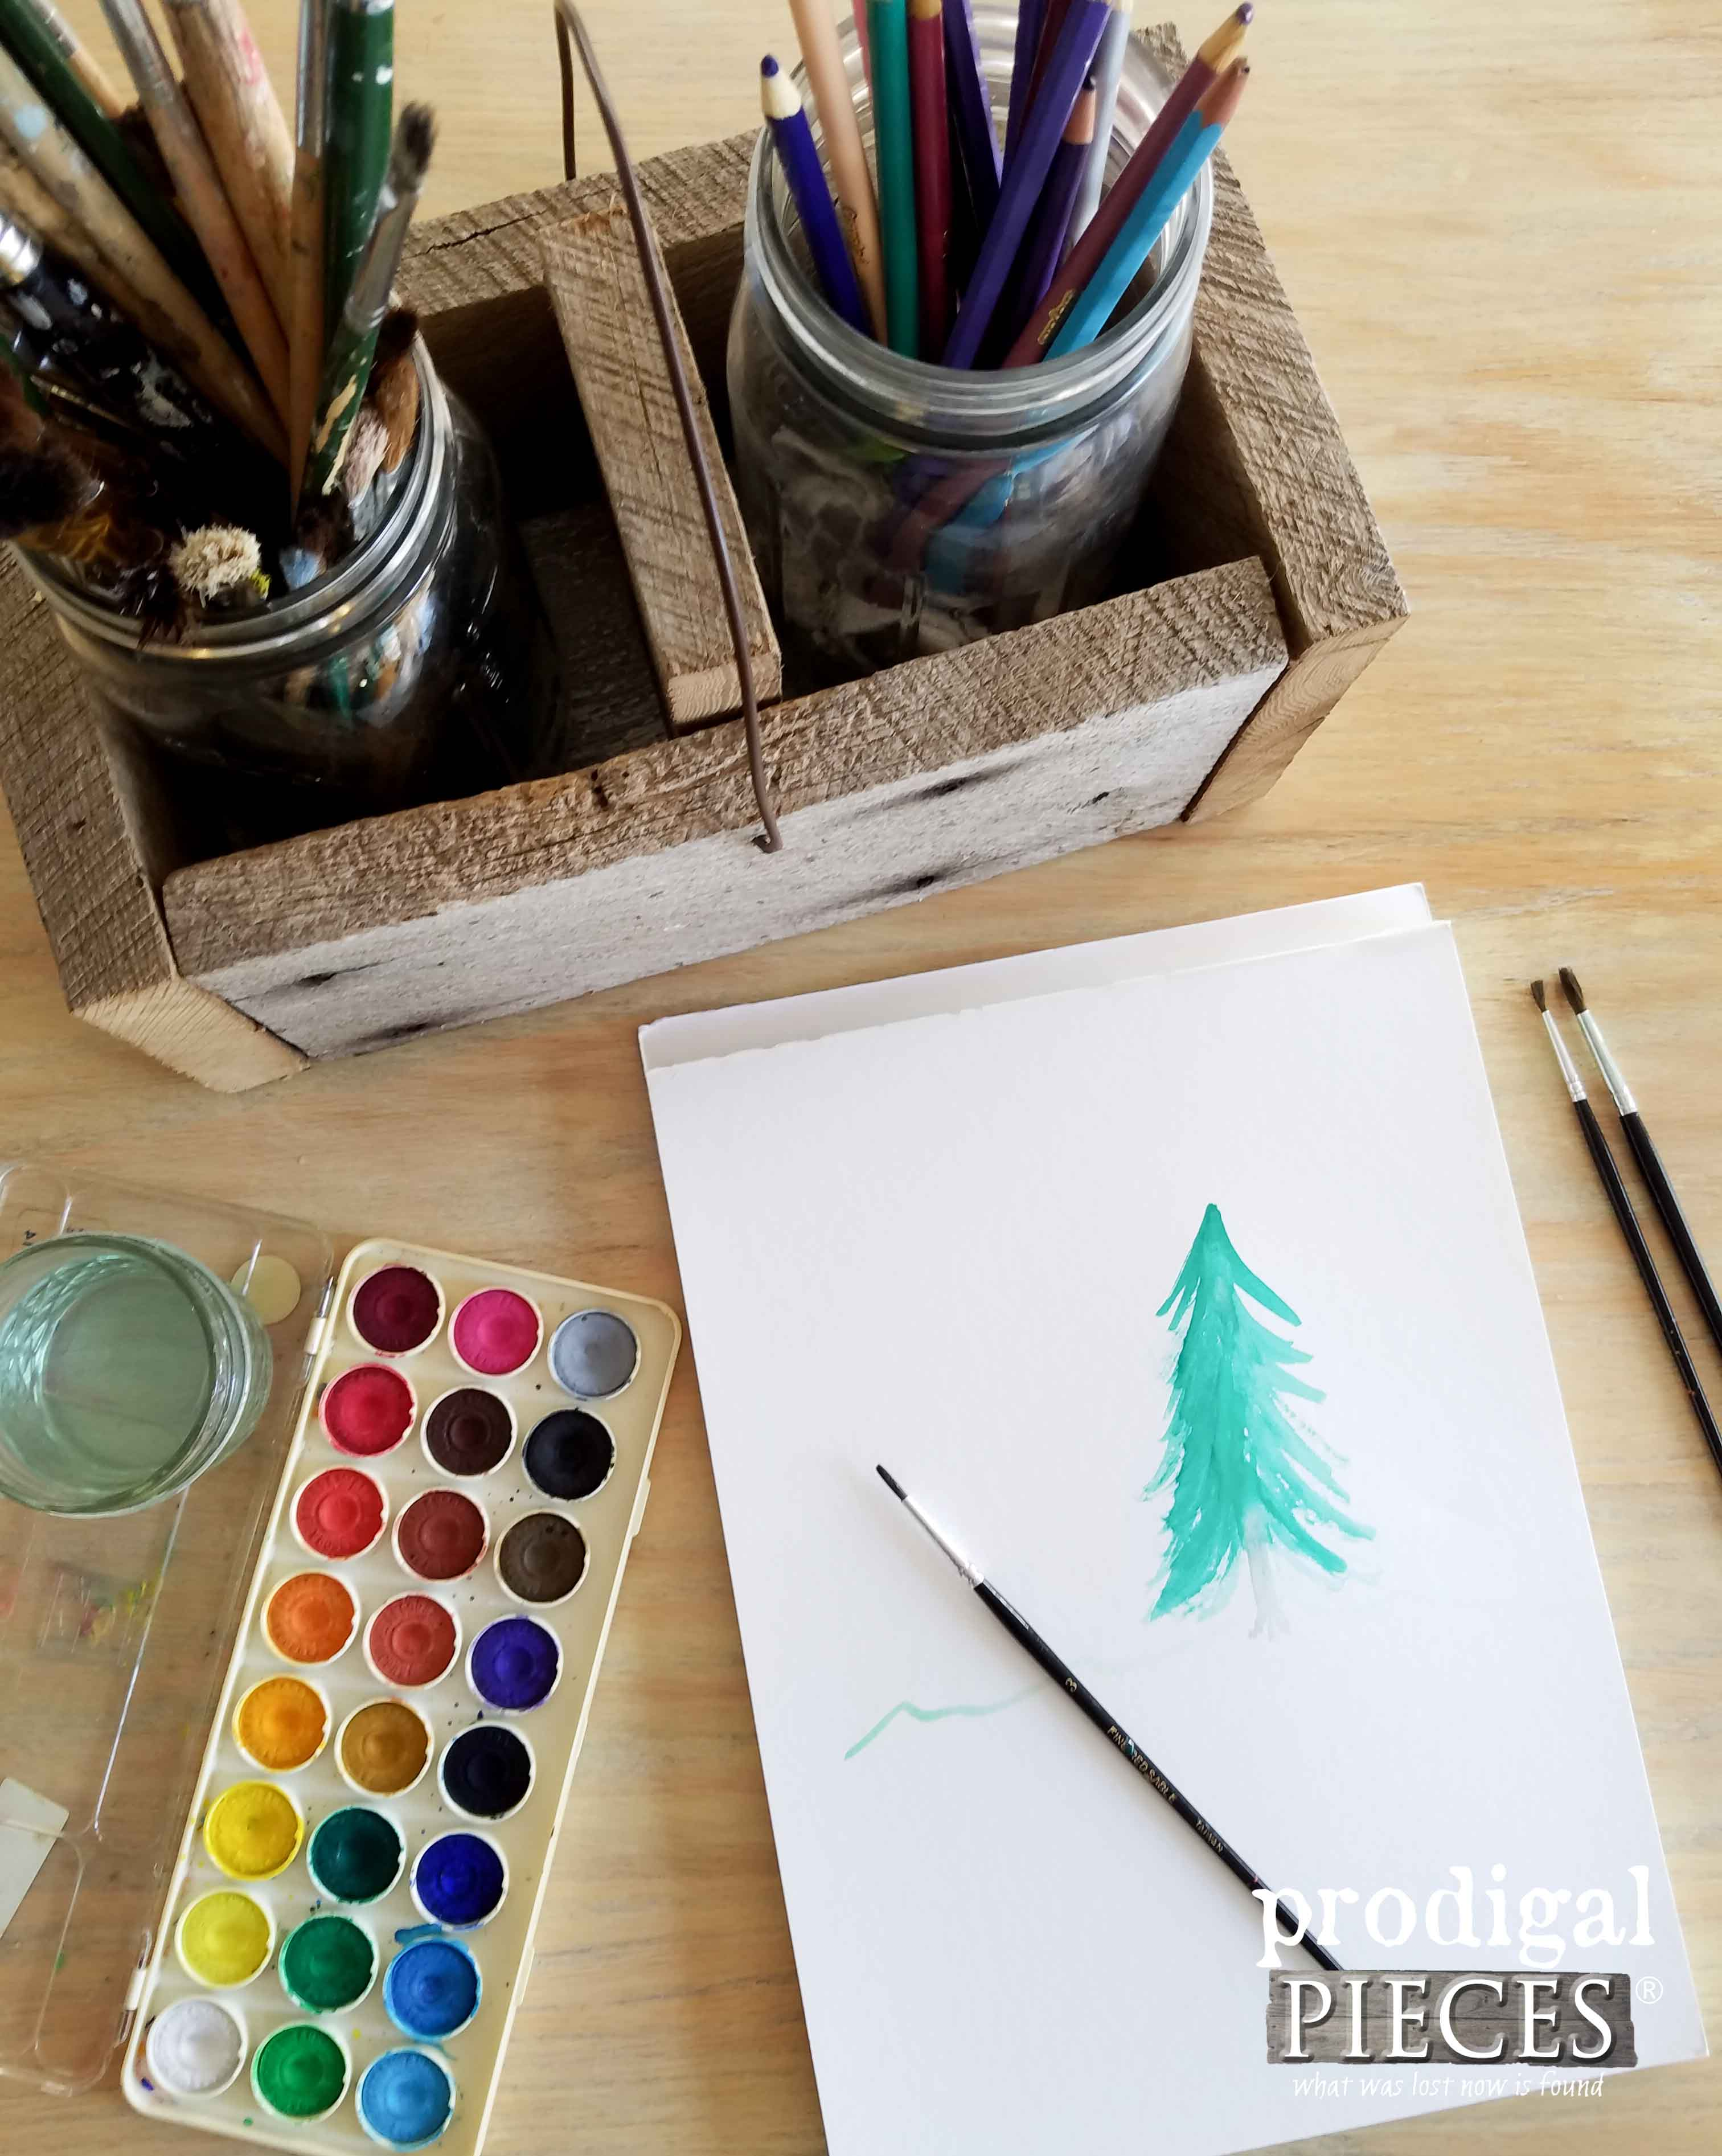 Build an Art Supply Caddy with this Tutorial by Prodigal Pieces | www.prodigalpieces.com